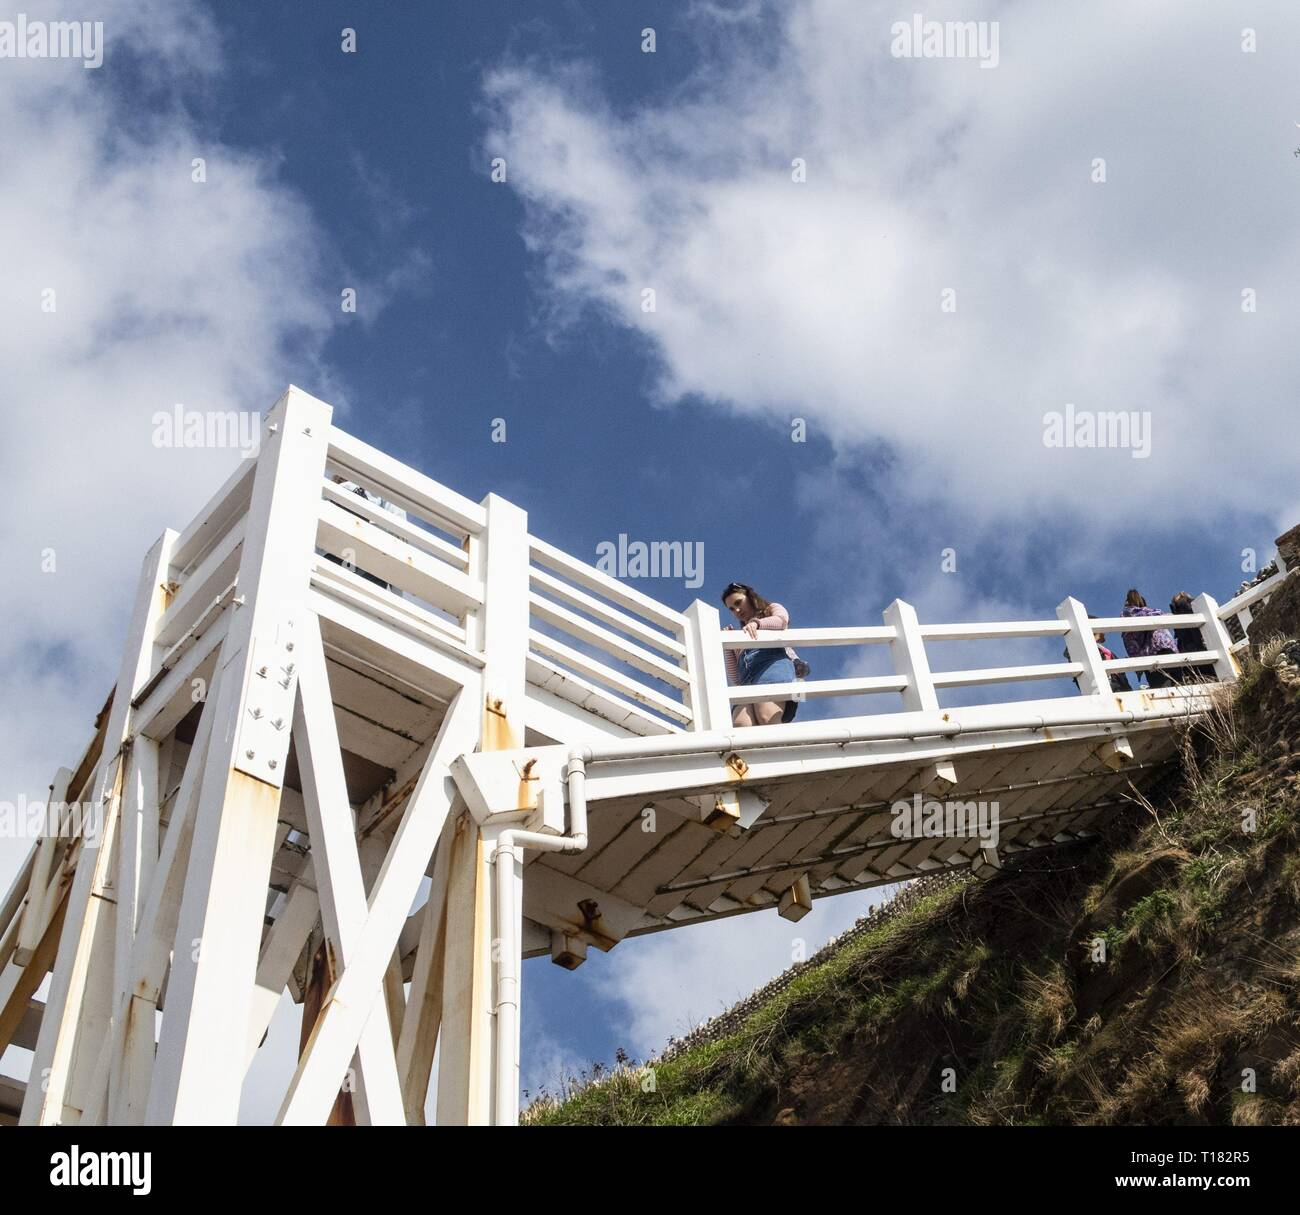 Sidmouth, UK. 24th Mar, 2019. The view from Jacob's Ladder on the beach at Sidmouth proves popular on a sunny day in March. Credit: Photo Central/Alamy Live News Stock Photo